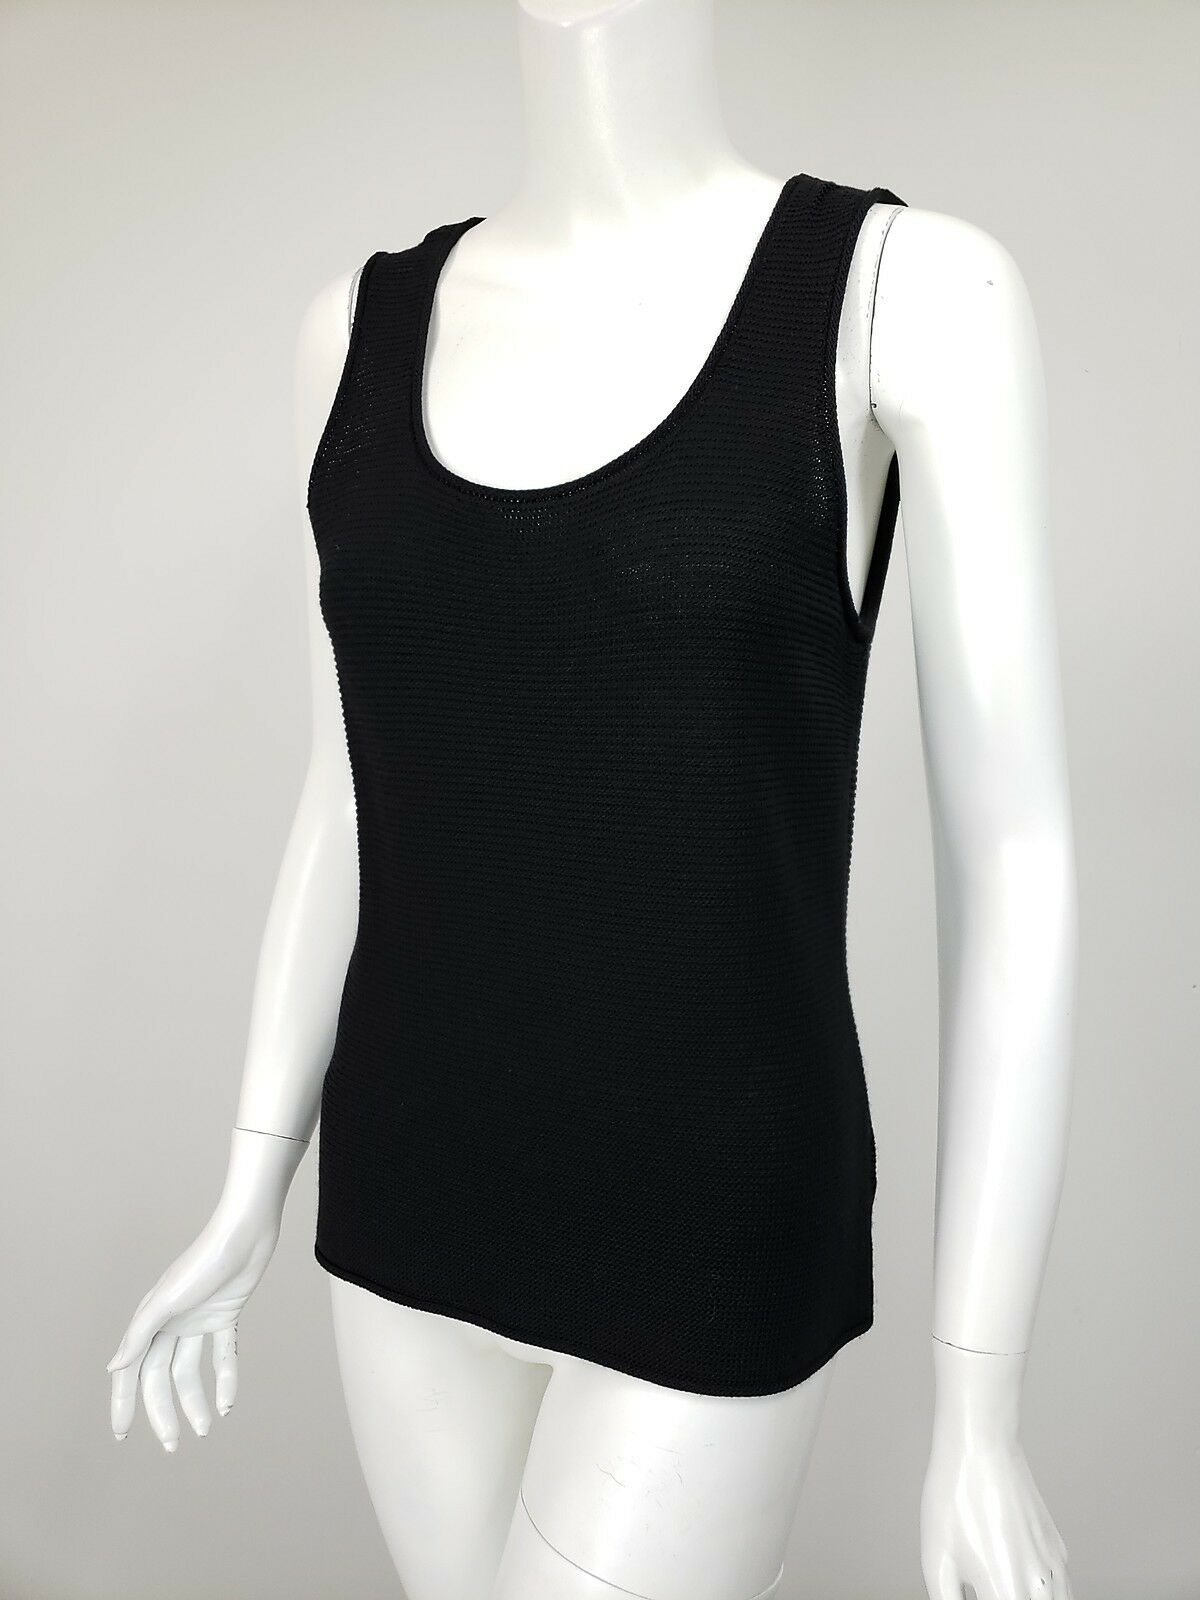 ST JOHN Gelb LABEL schwarz Texturot Wool Blend Scoop Neck Tank sz S